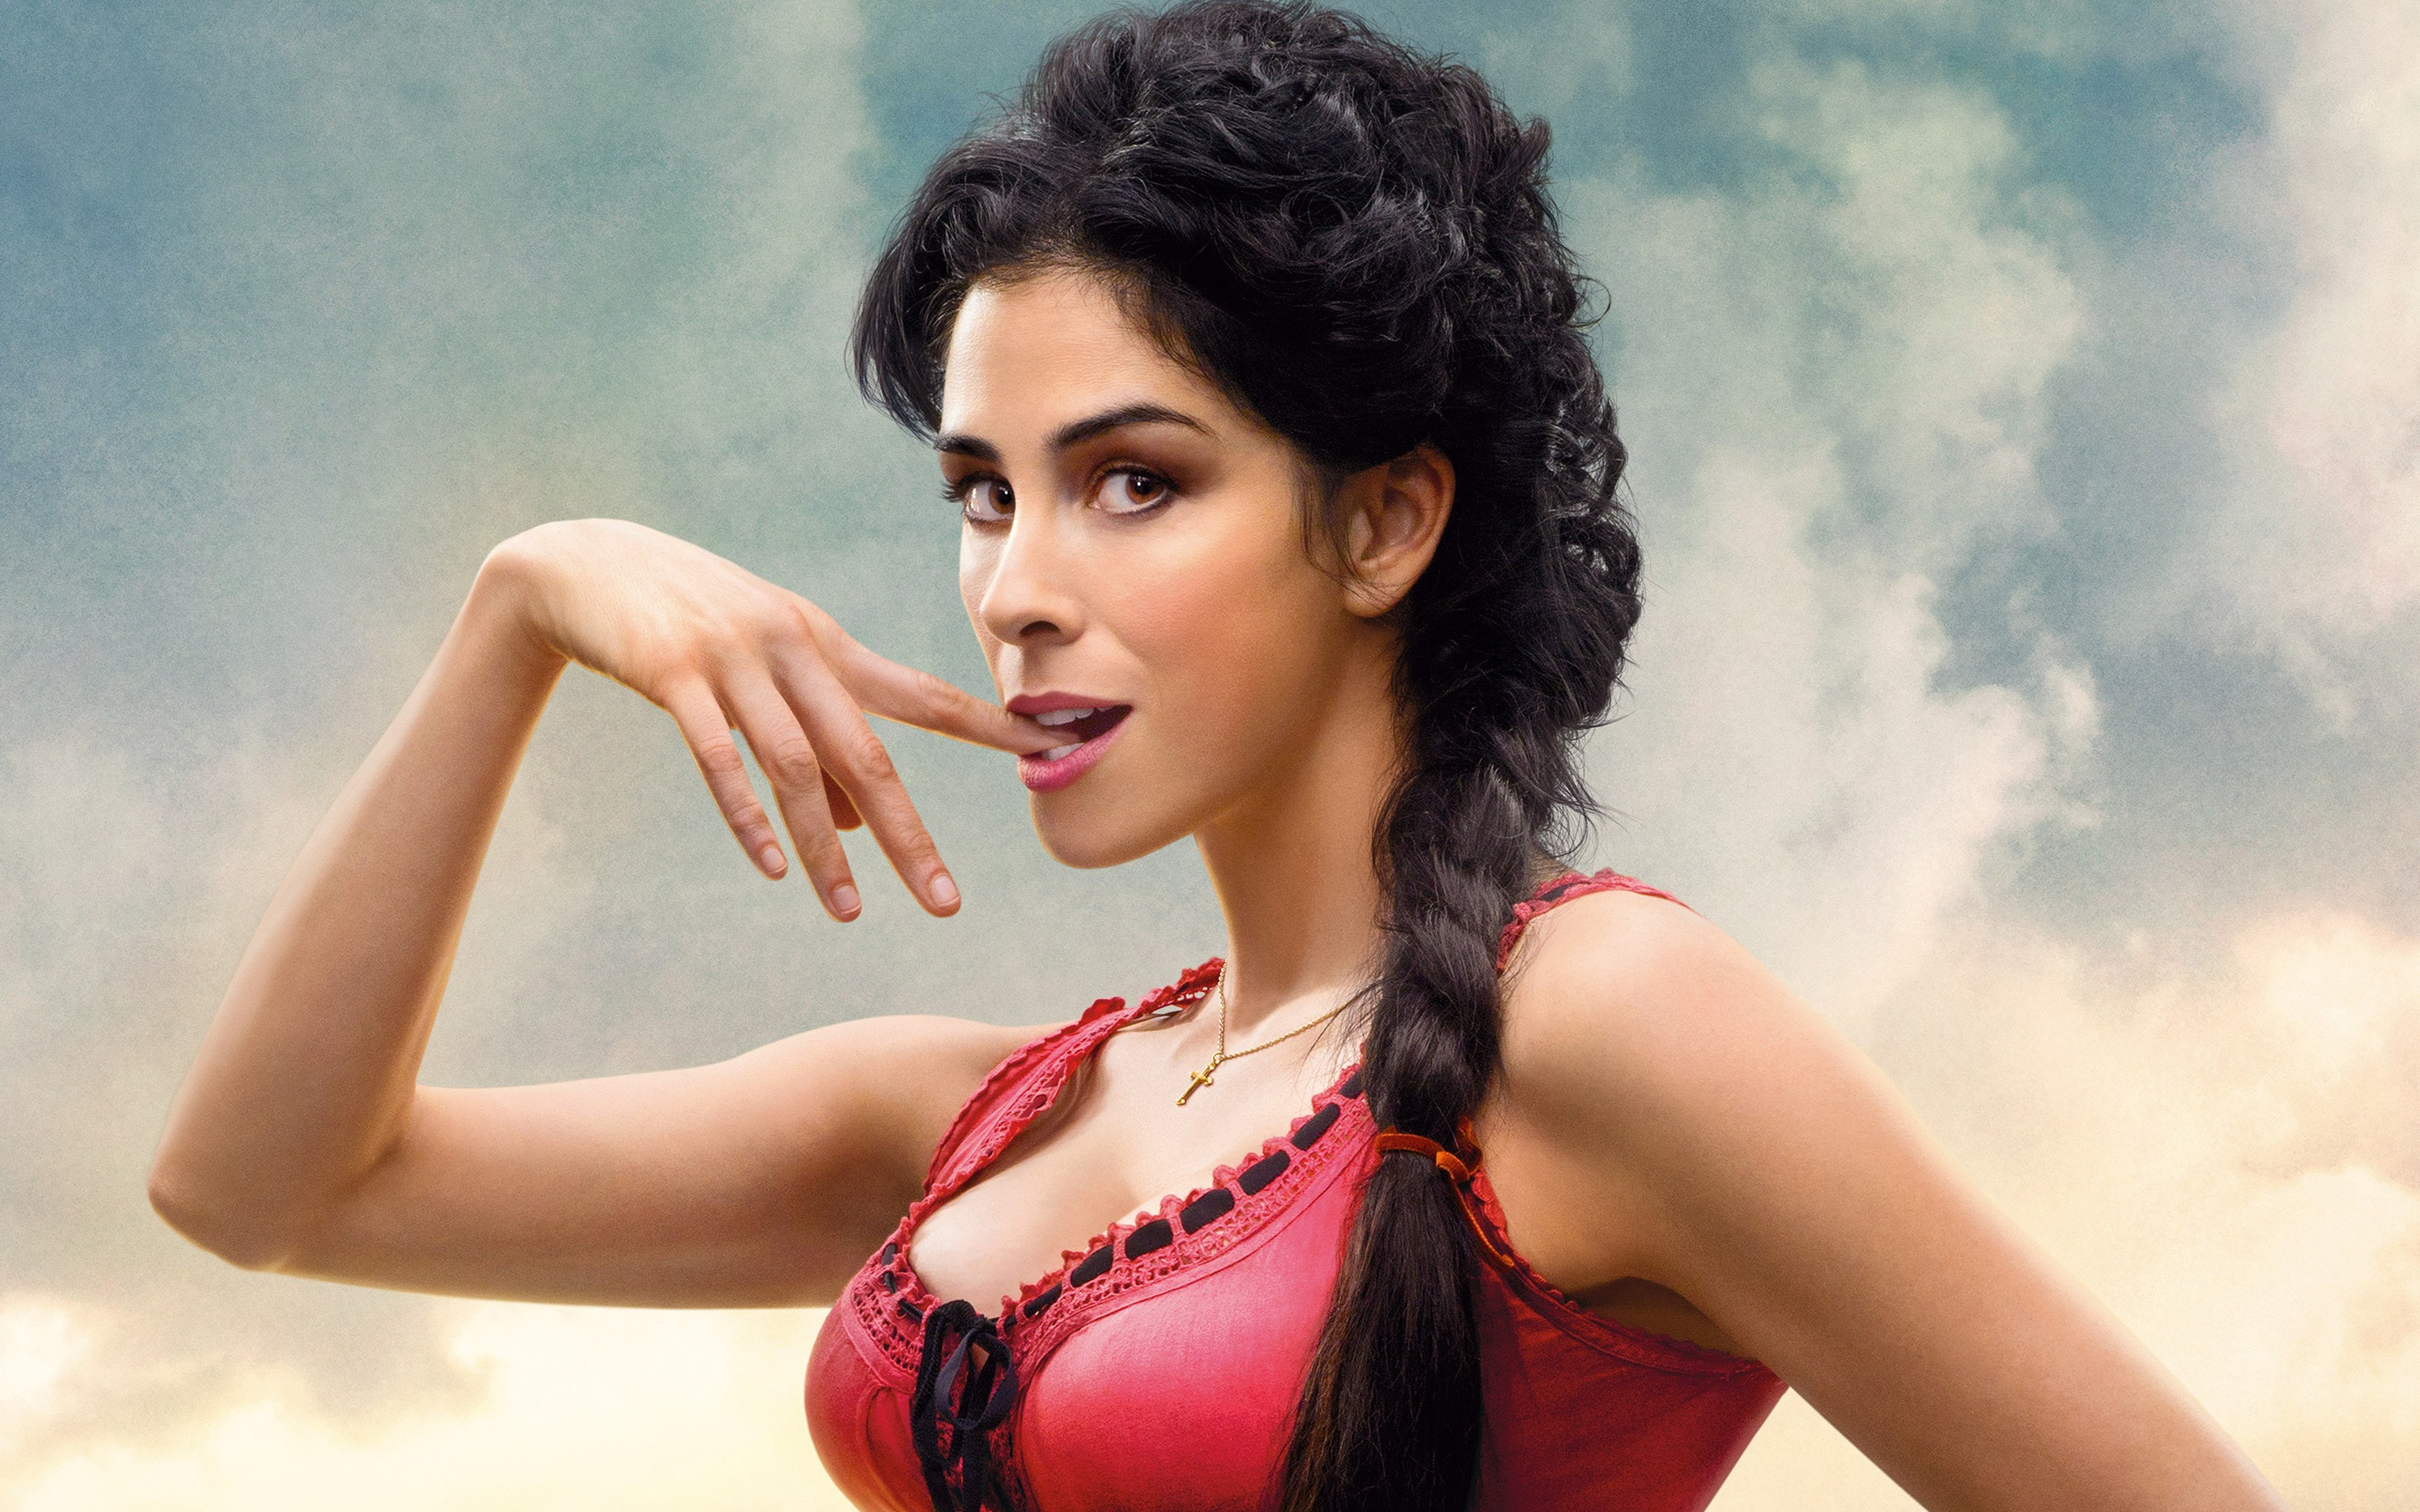 Sarah Silverman A Million Ways To Die In The West Wide